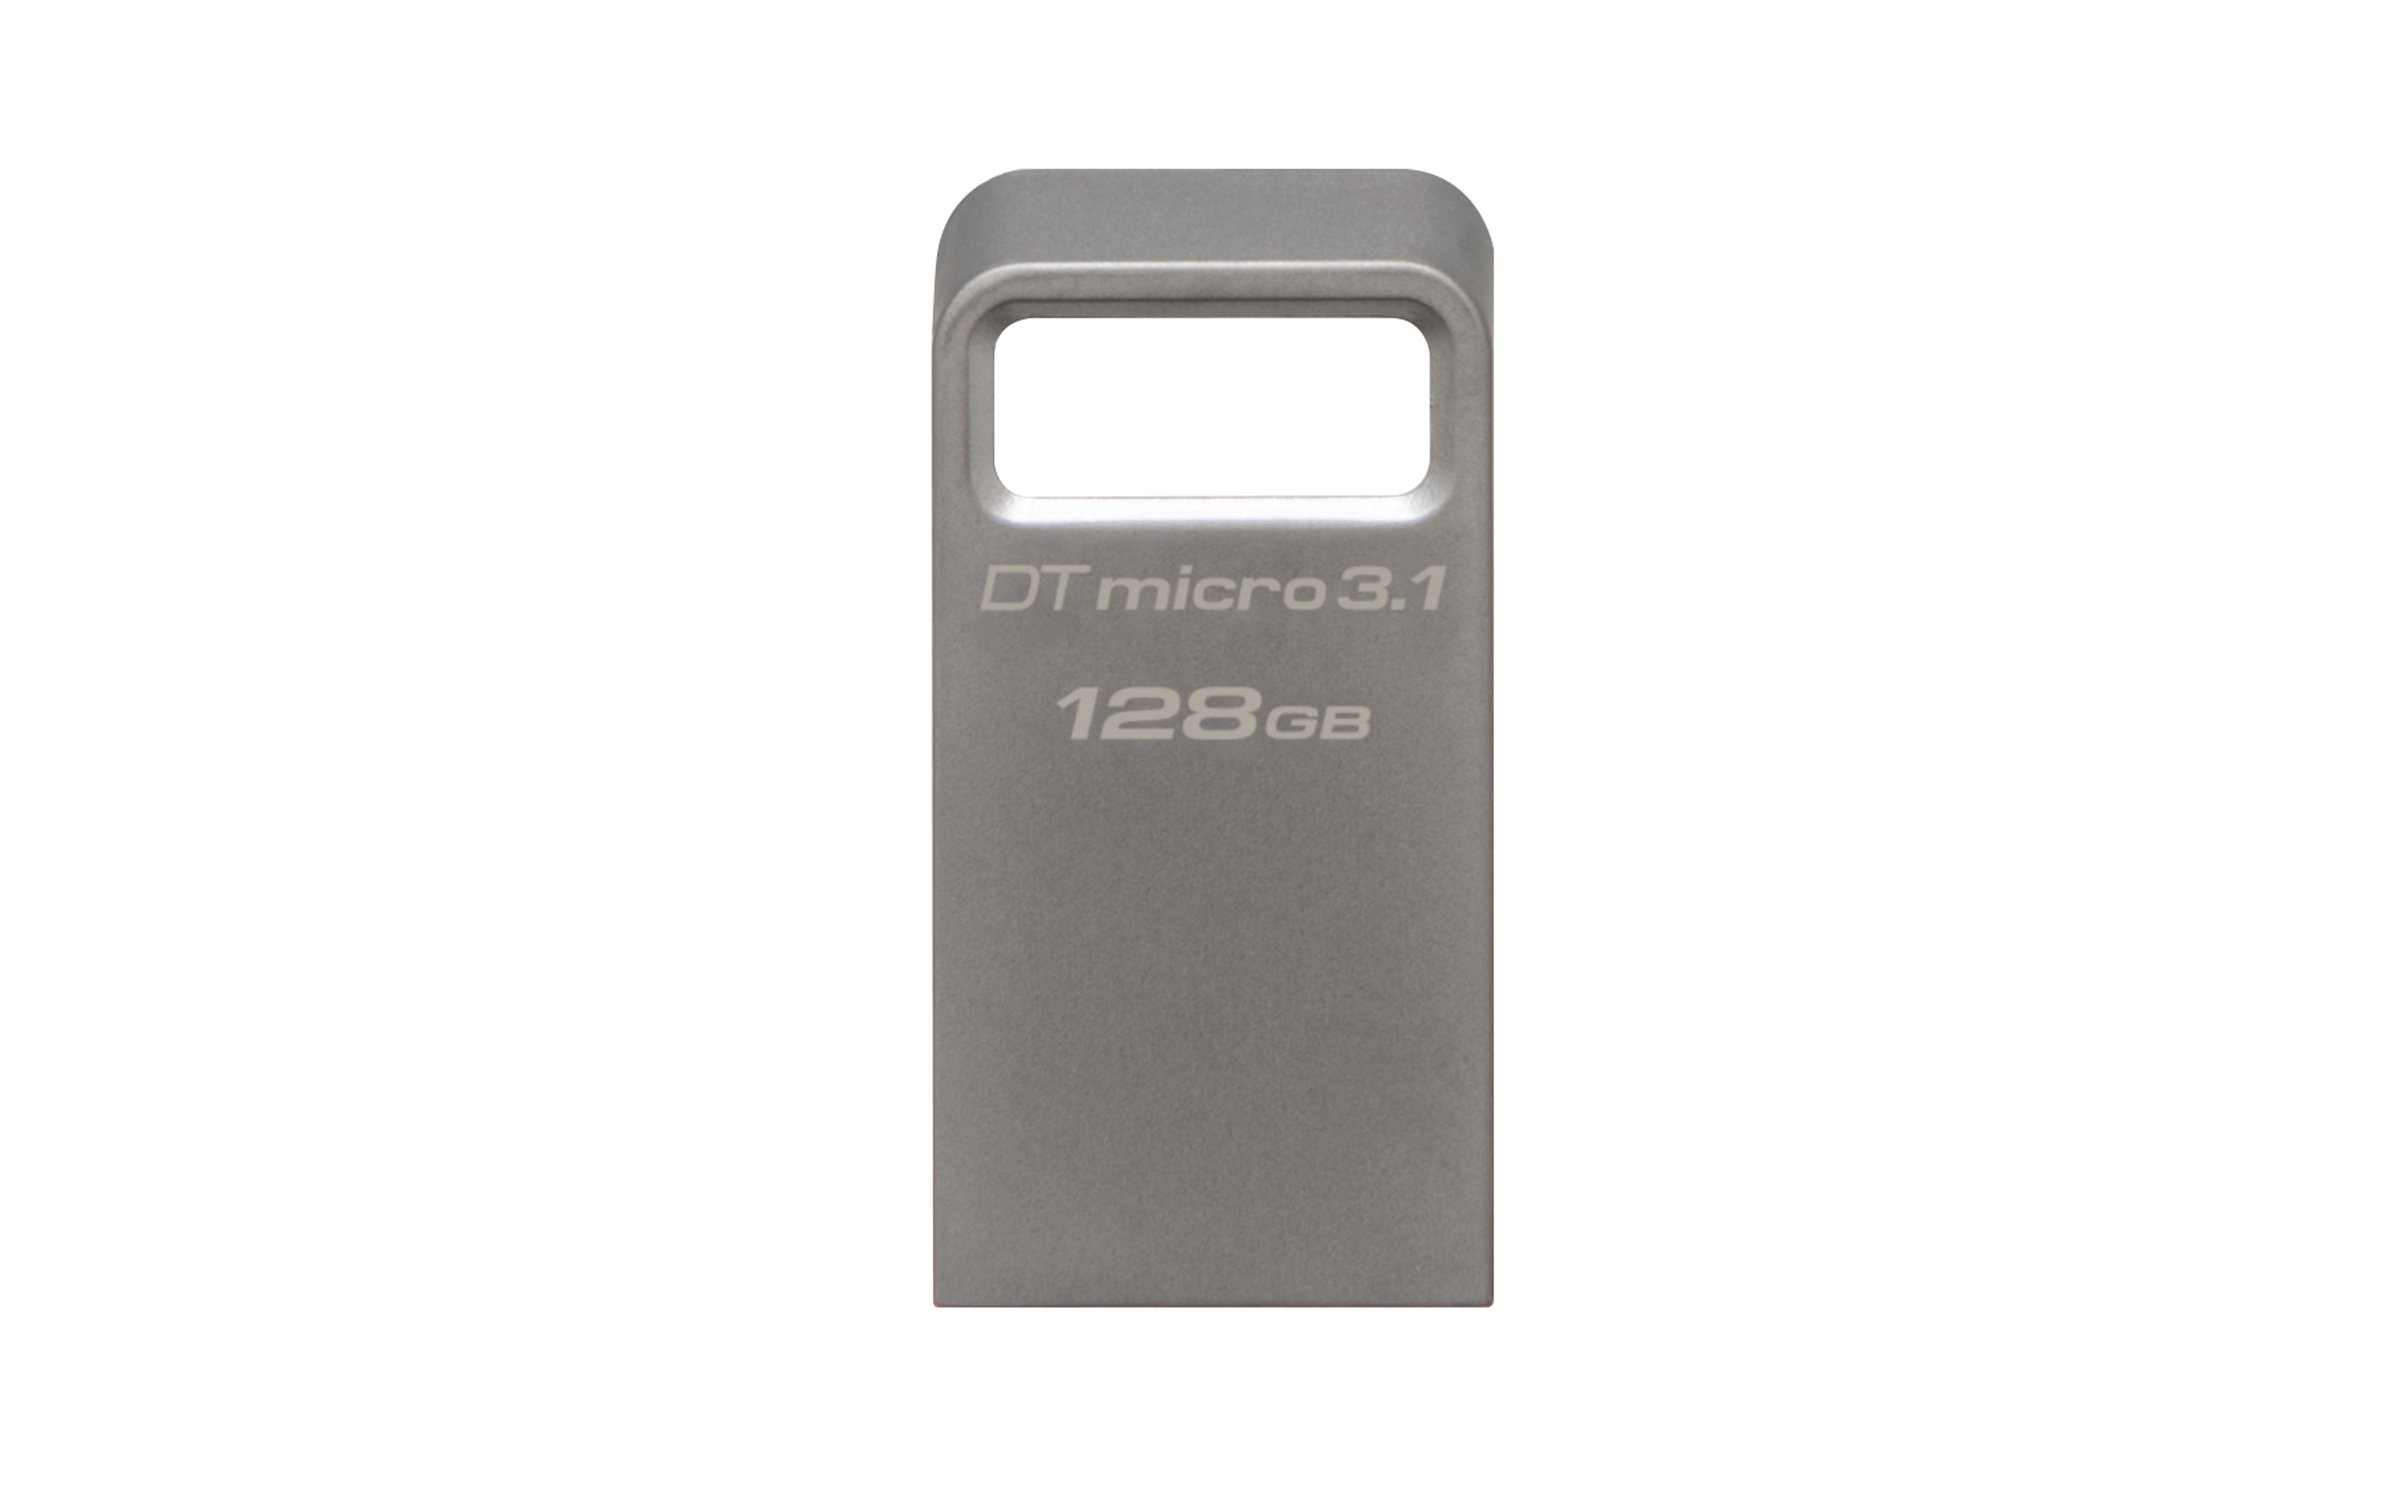 Kingston DataTraveler Micro 3.1 128GB USB 3.0 Compatible Hi-Speed up to 100MB/s Ultra-small Metal Case Flash Drive (DTMC3/128GB) - Silver